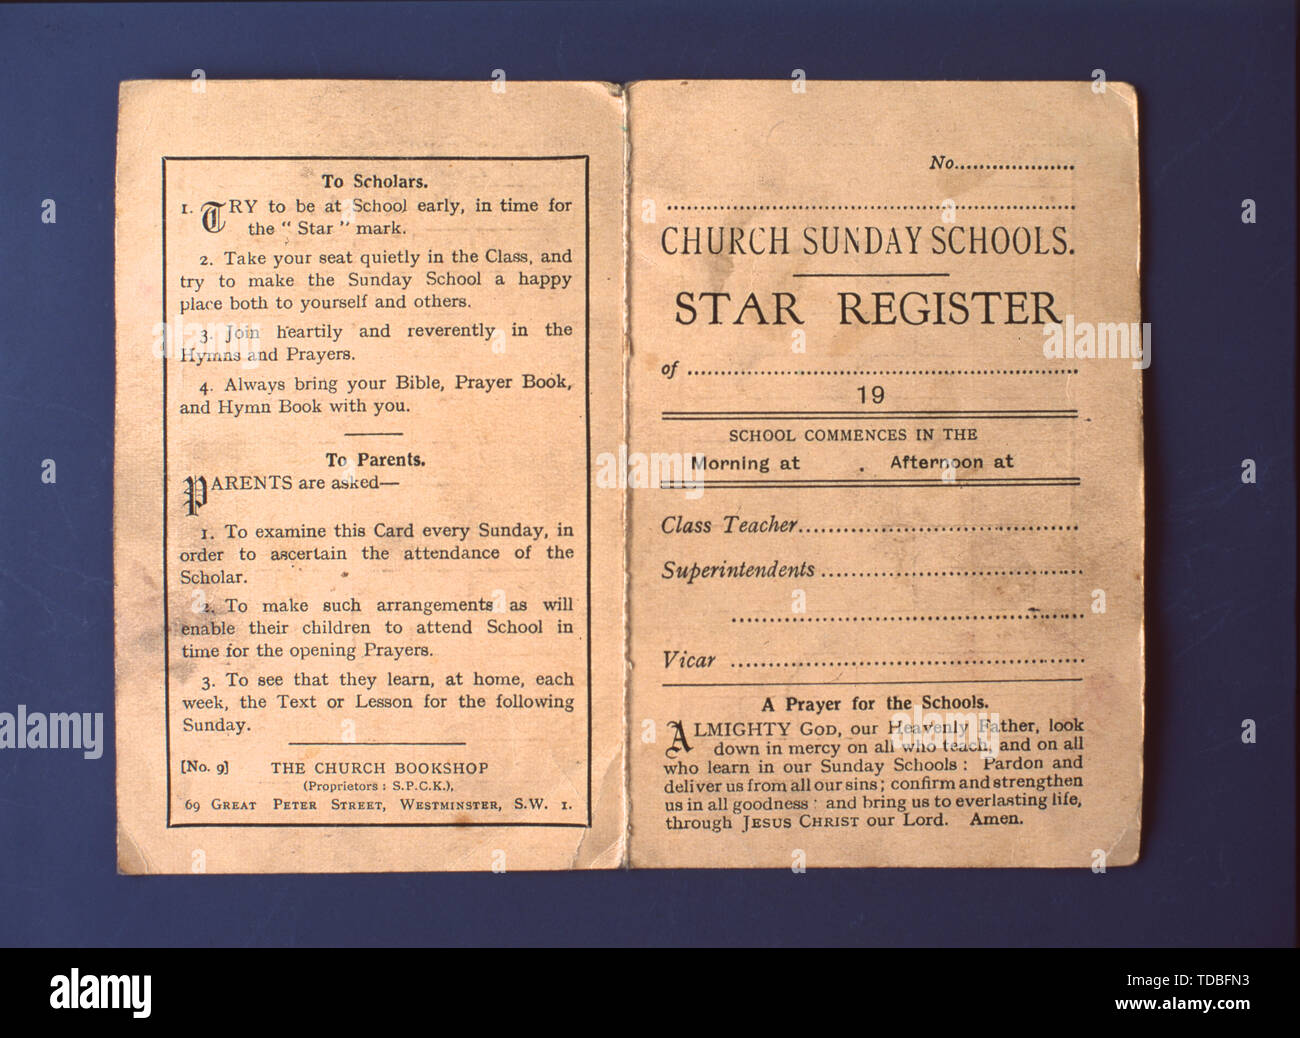 Church Sunday School Star Register as used by The Salvation Army Sunday School, Kirby Street, Poplar, London. 1960. - Stock Image